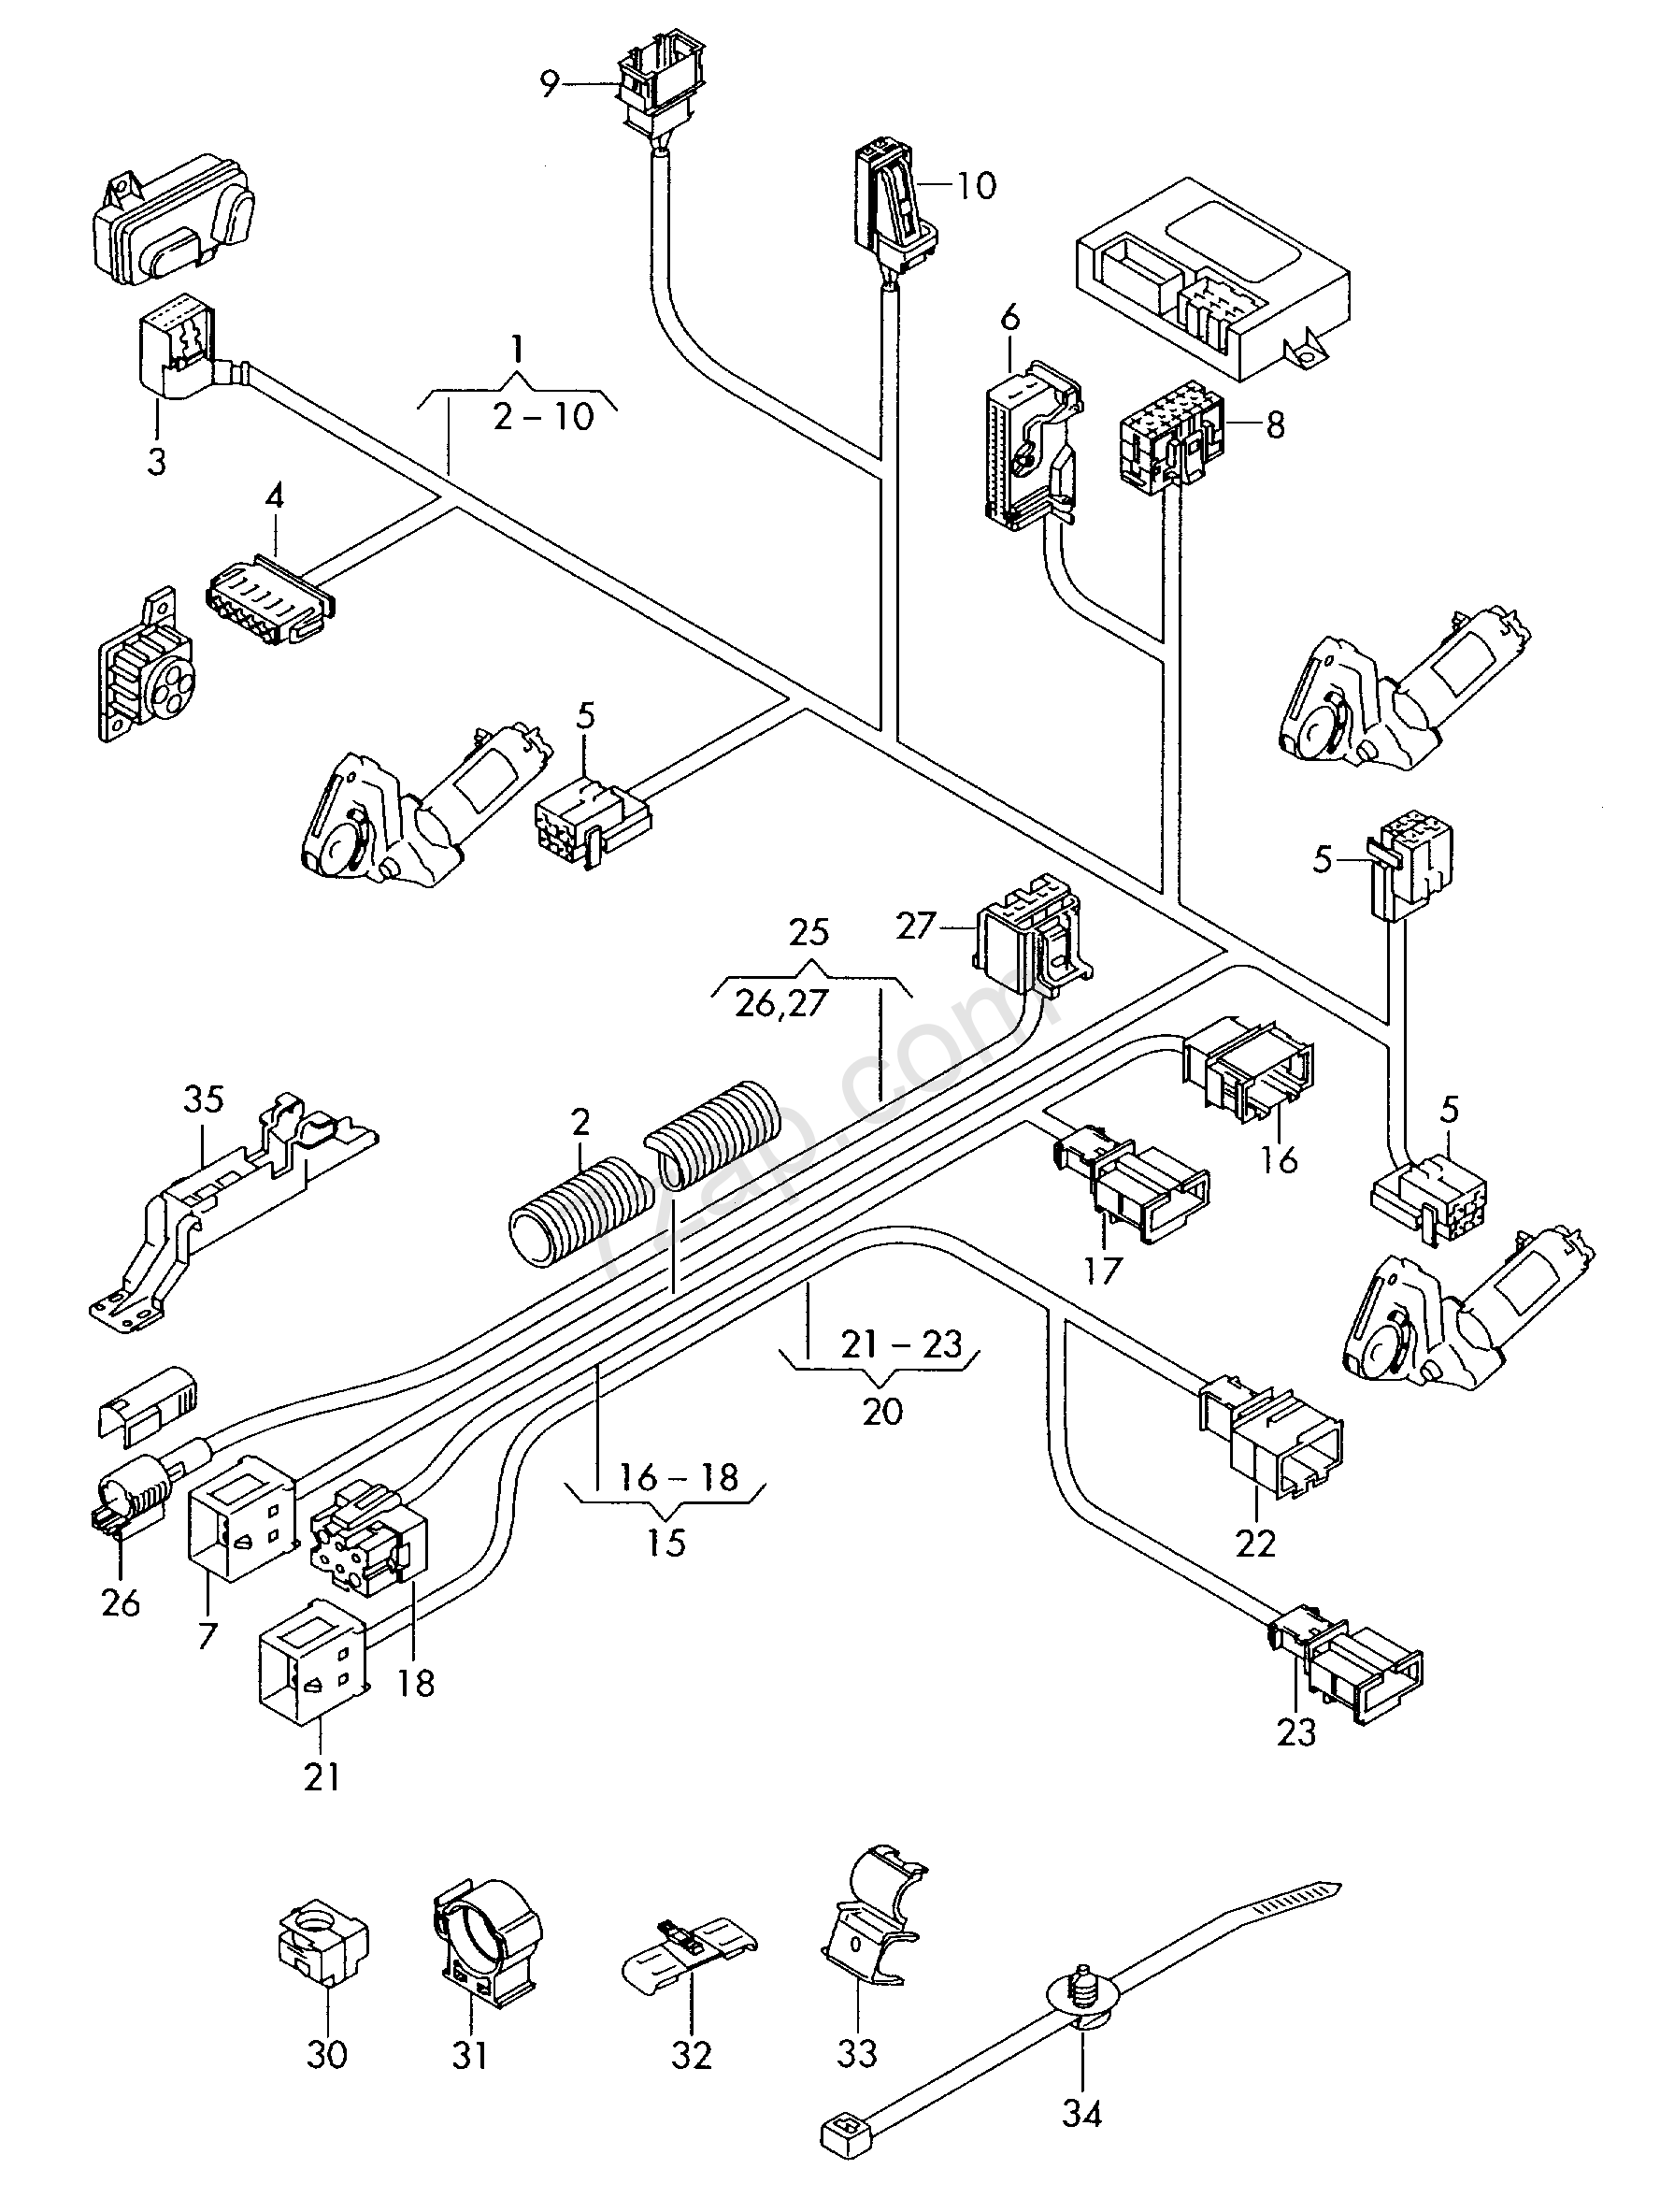 seat belt airbag wiring harness